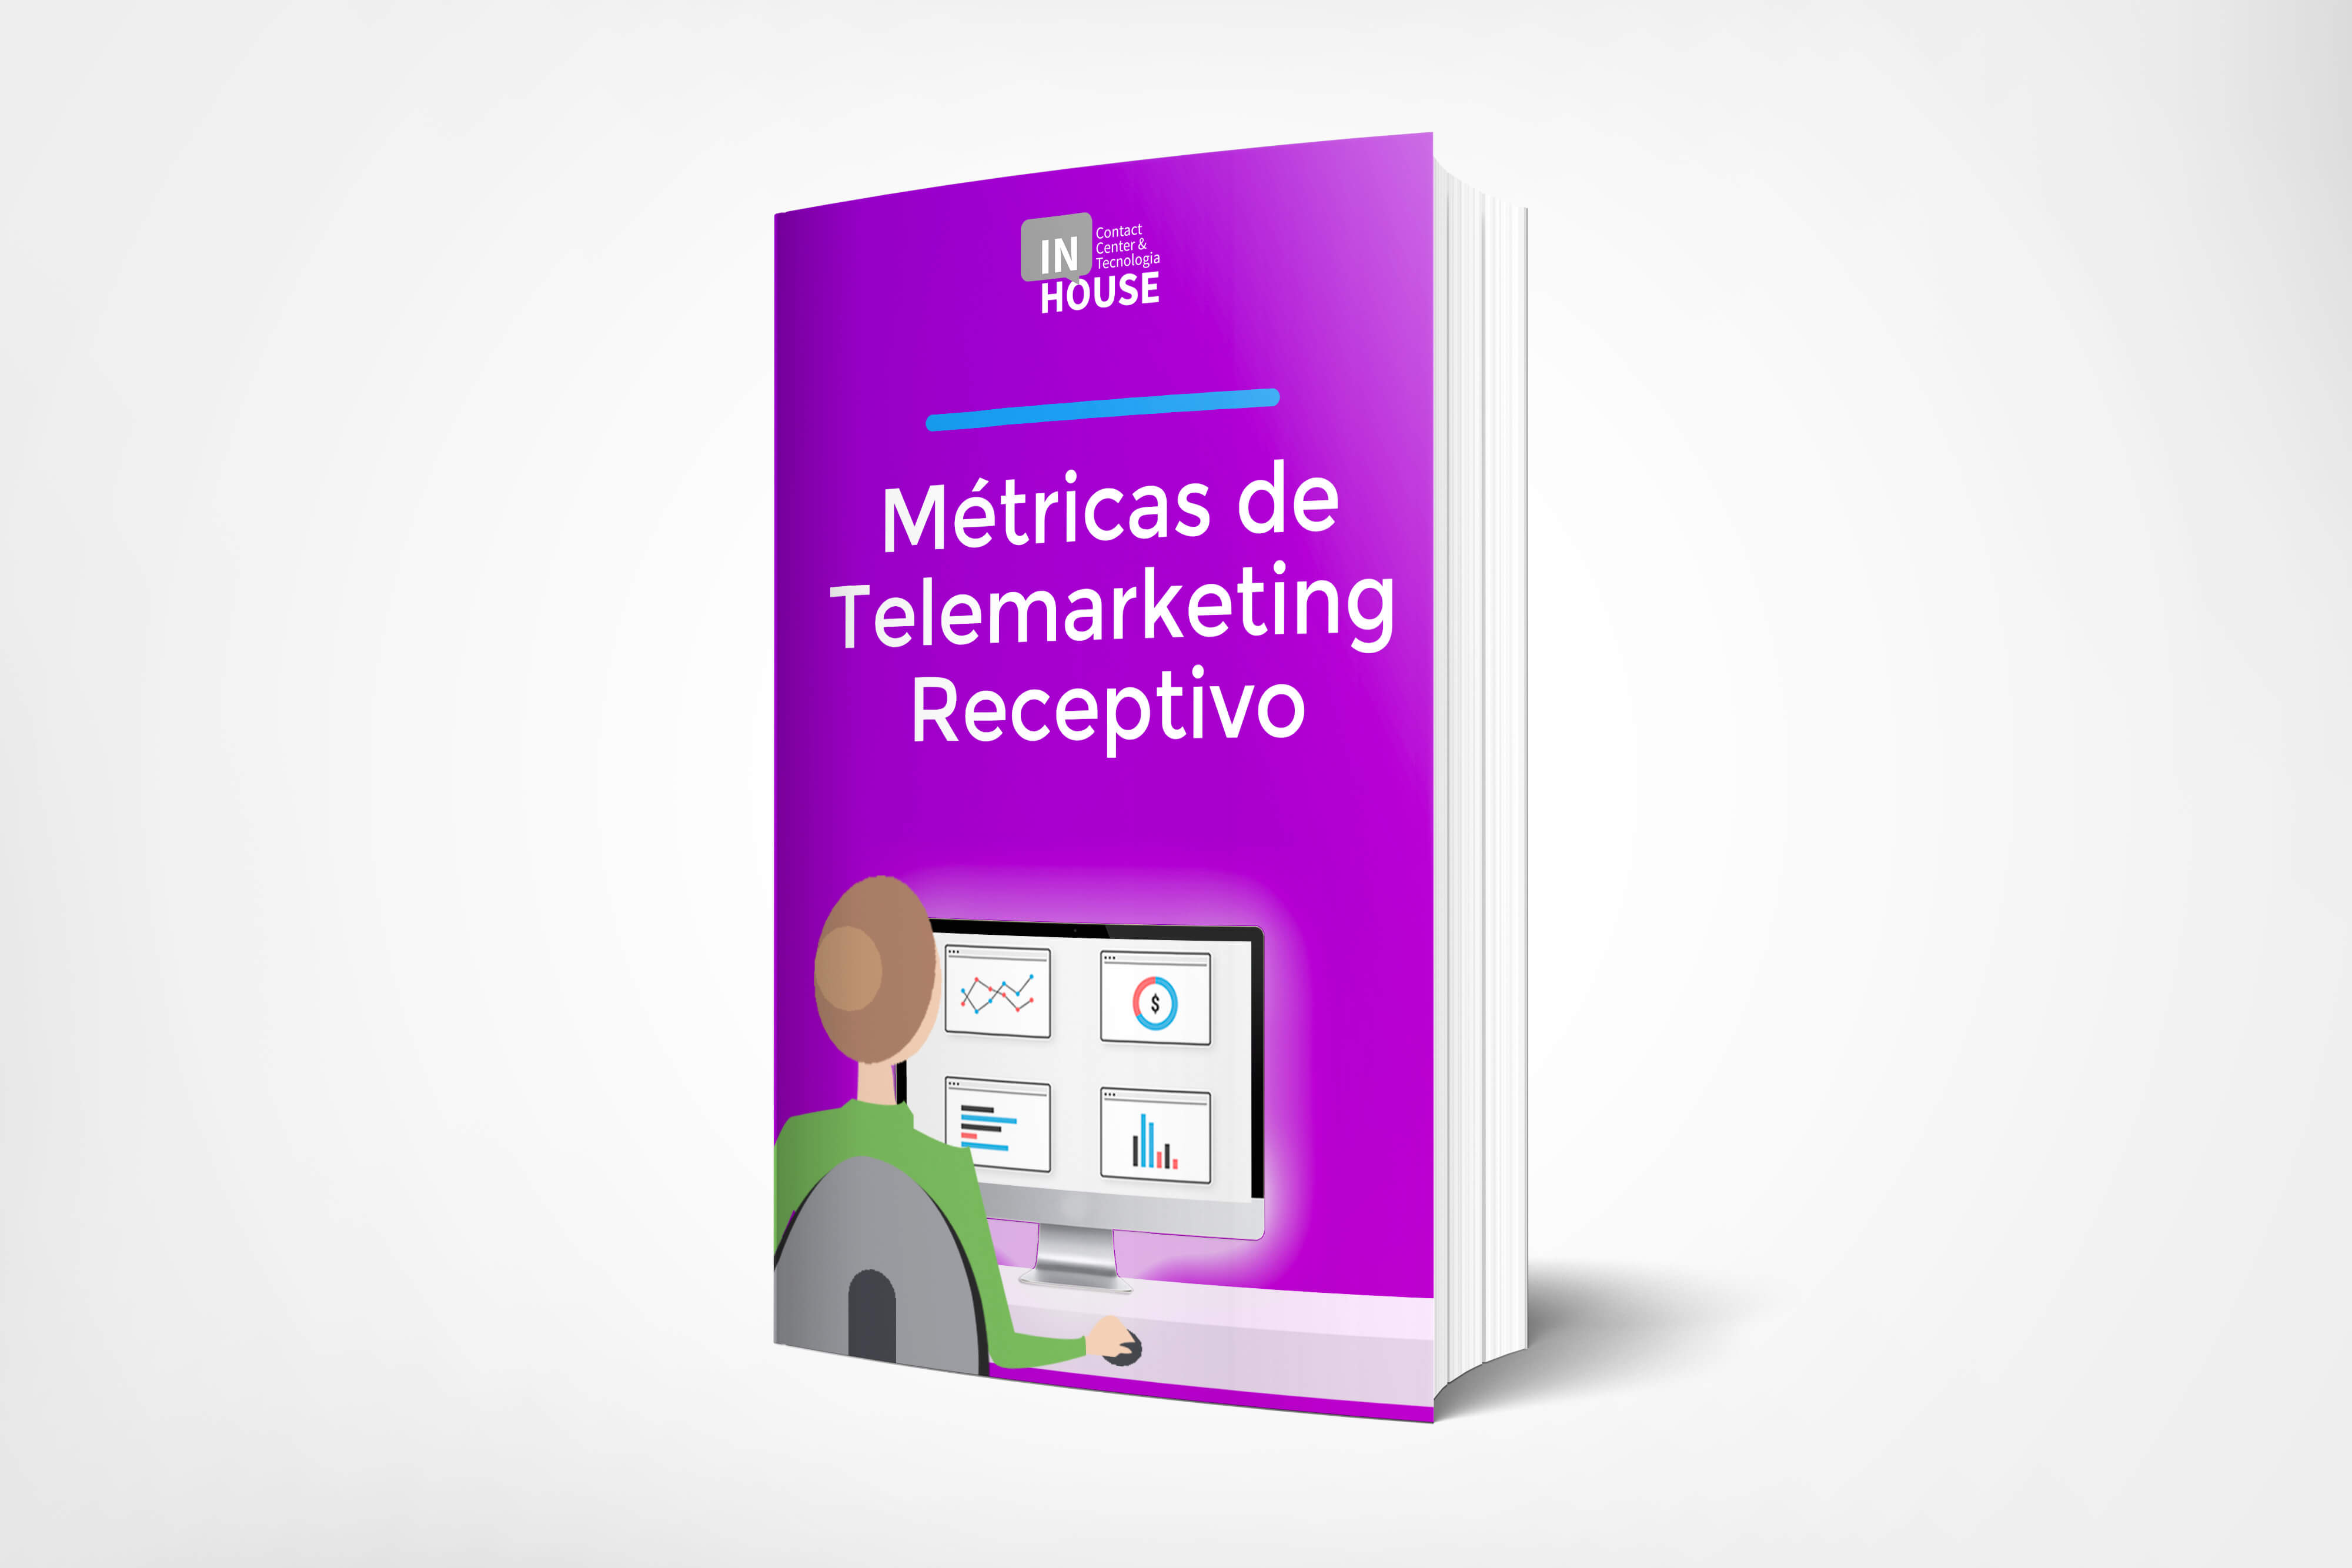 metricas-telemarketing-receptivo-ebook-mockup